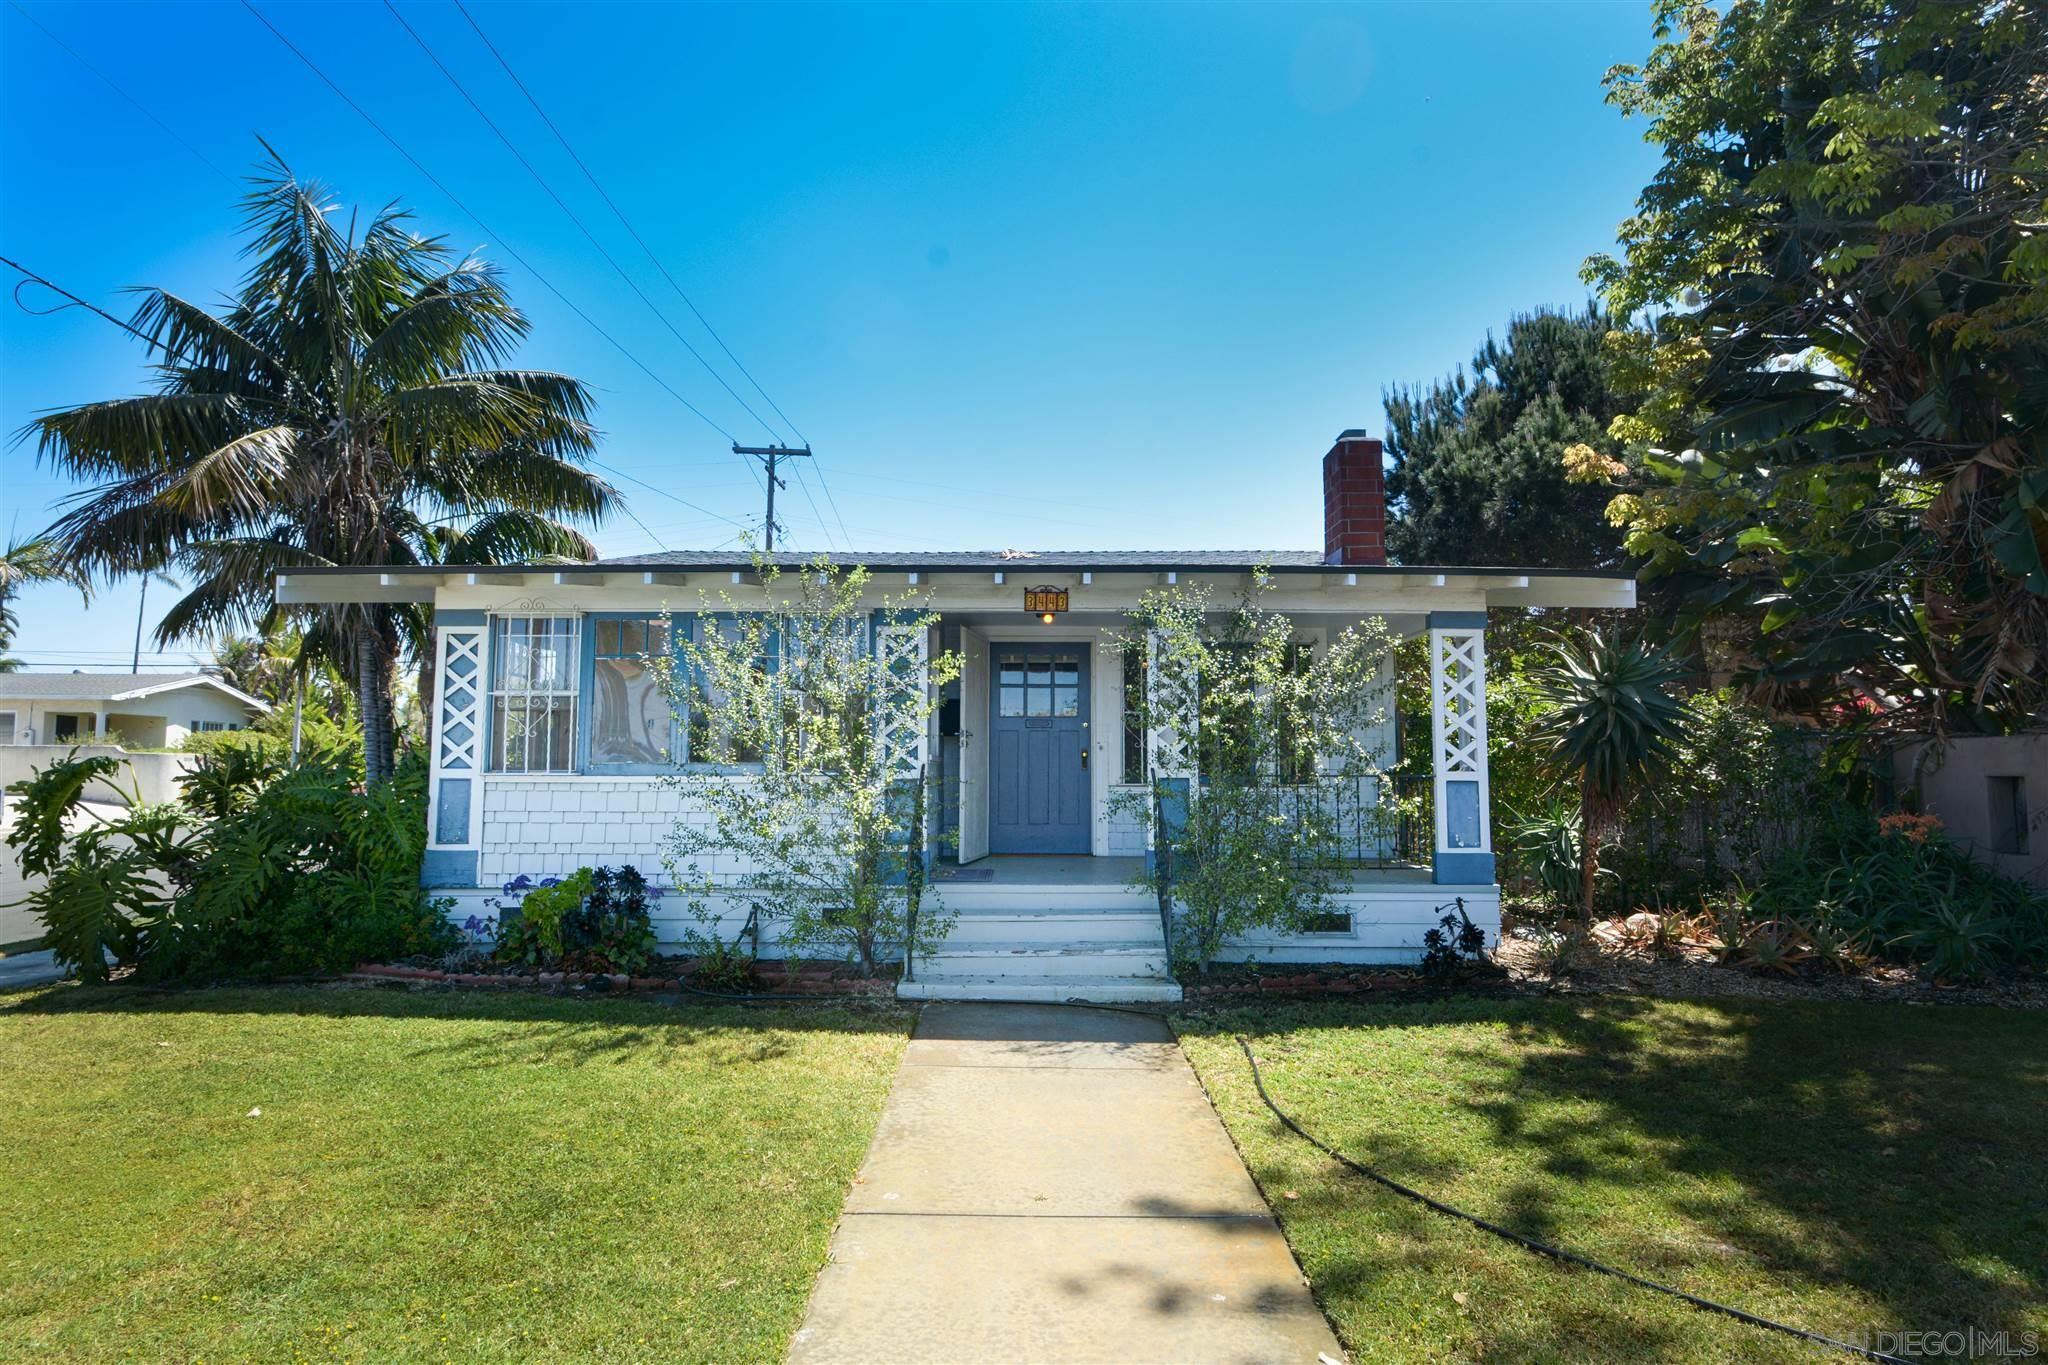 Main Photo: NORTH PARK House for sale : 2 bedrooms : 3443 Louisiana St in San Diego